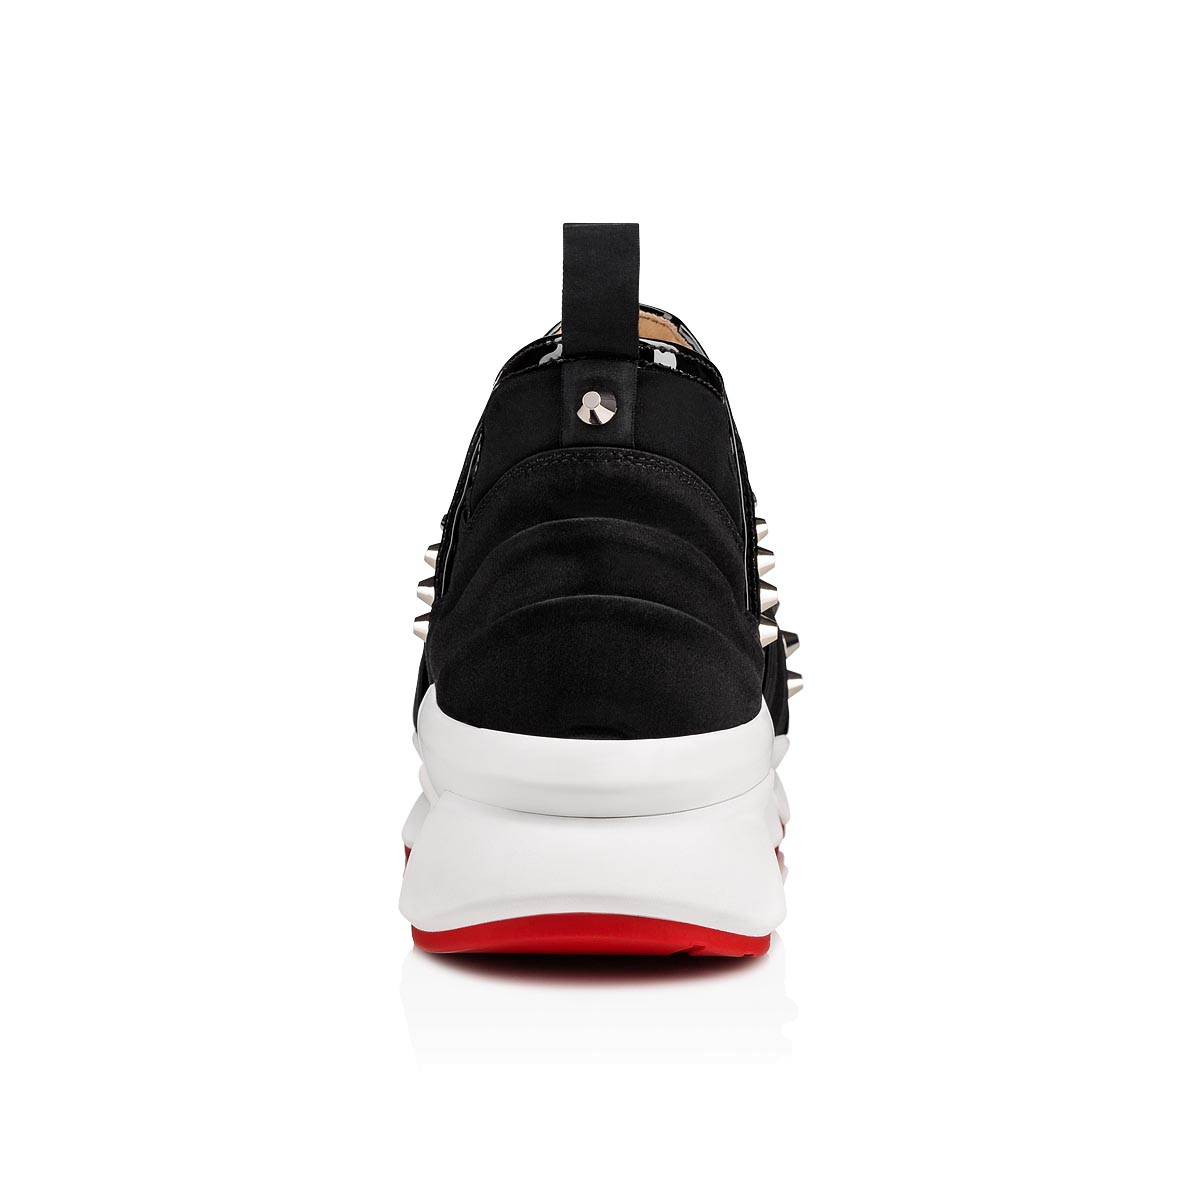 Shoes - 123 Run - Christian Louboutin